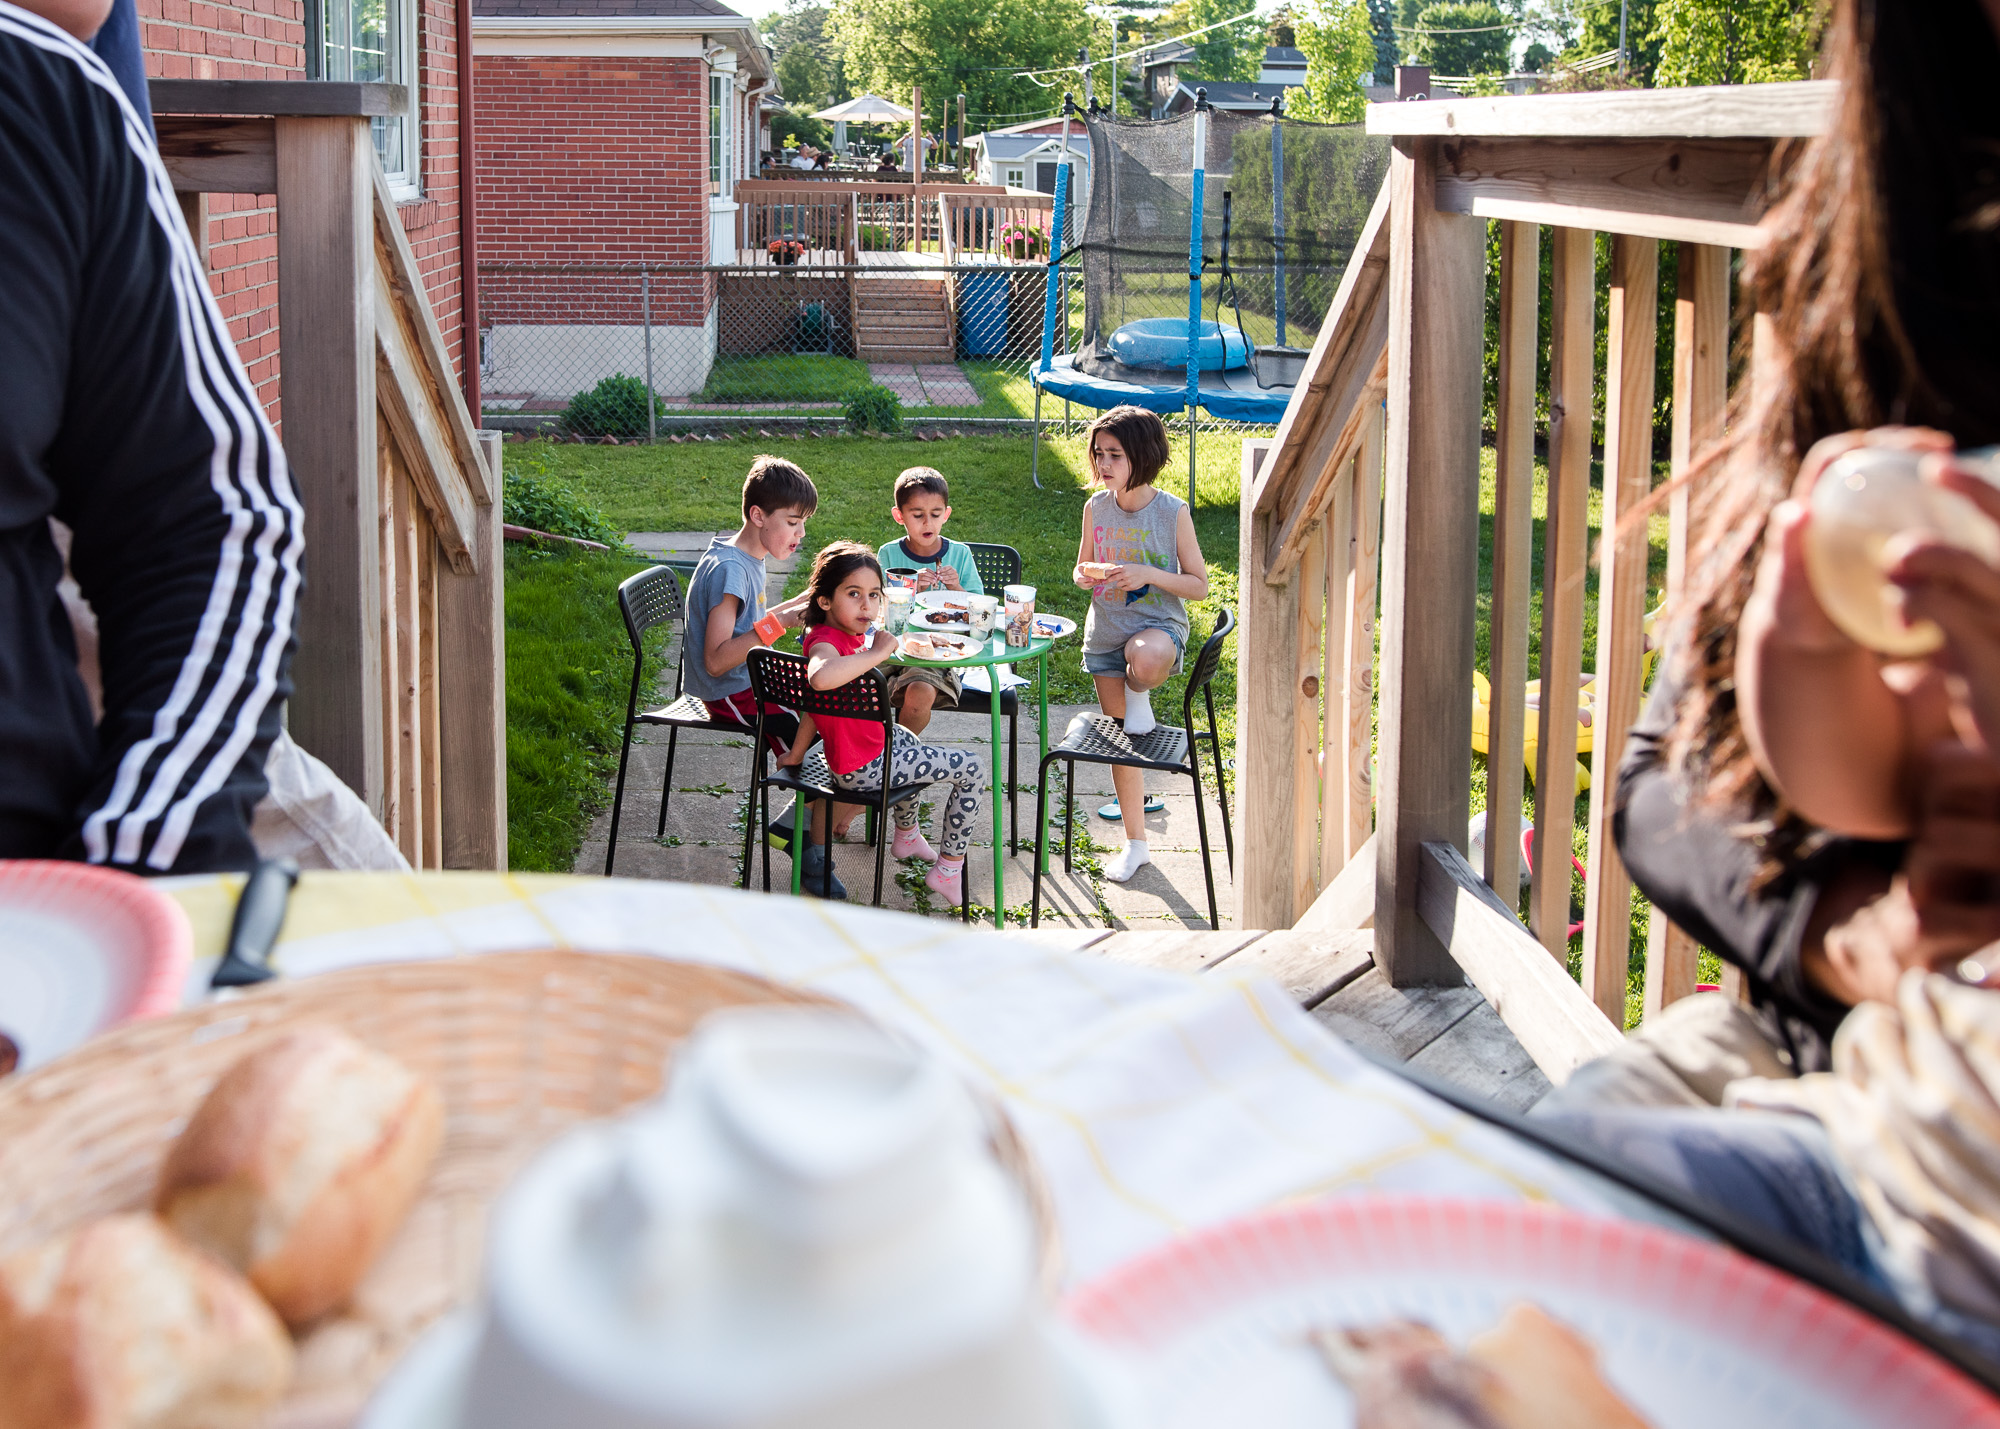 montreal-family-photography-backyard01-2.jpg